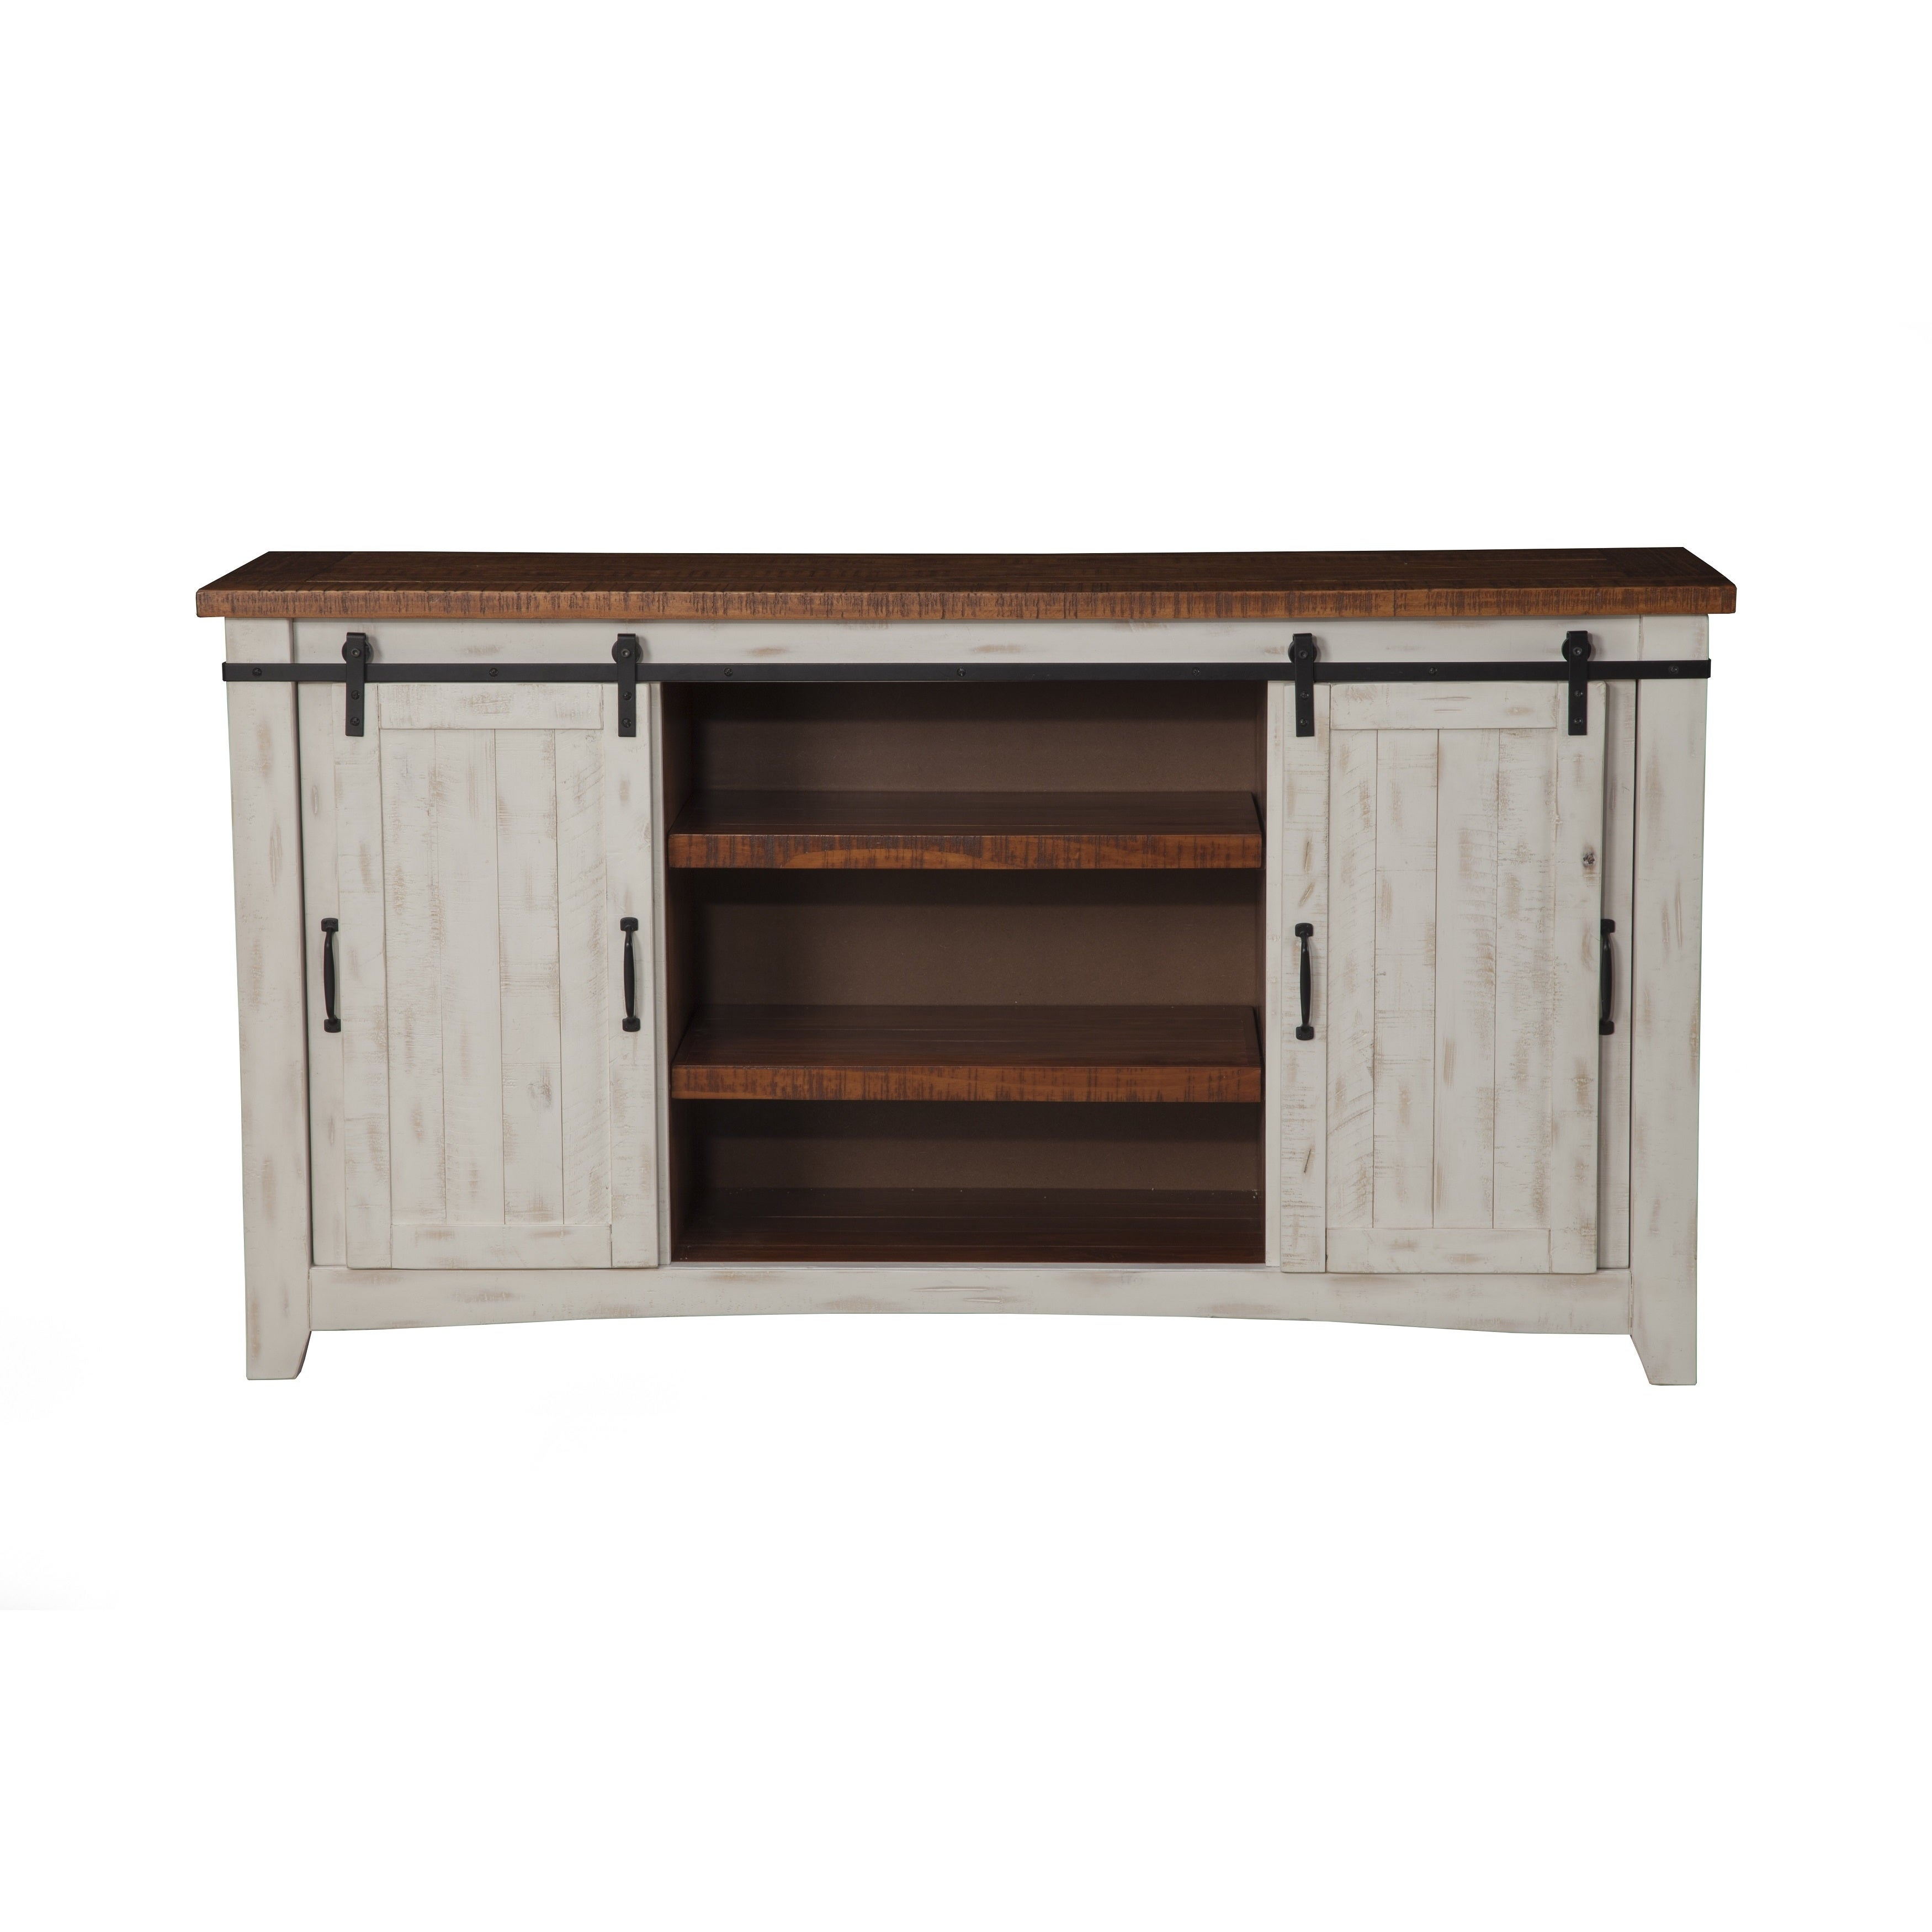 Martin Svensson Home Taos 65 Tv Stand 65 Inches In Width Free  # Idee Meuble Tv Fait Maison